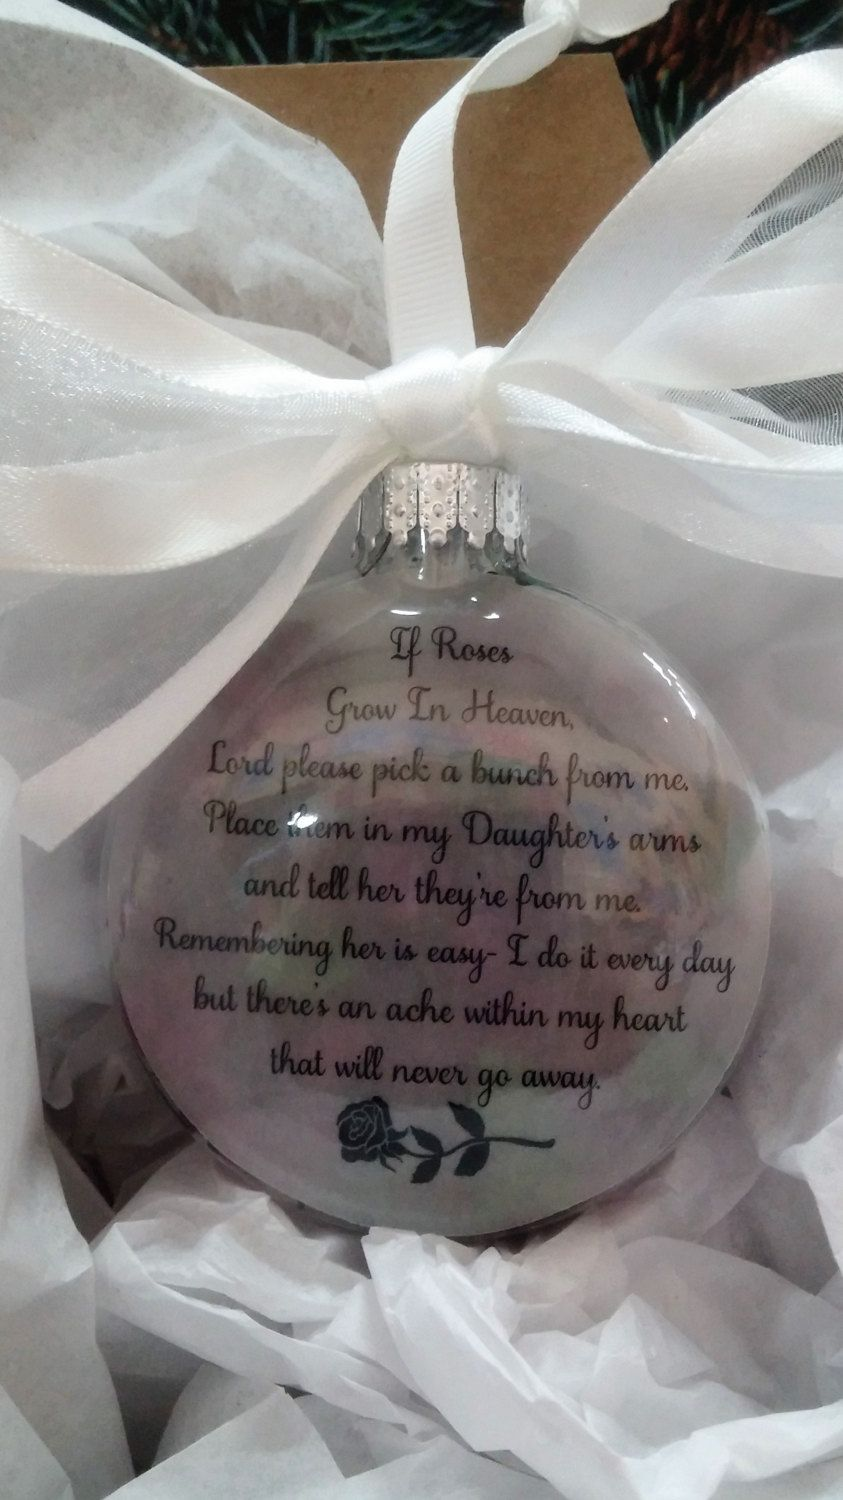 """Daughter Memorial Gift """"If Roses Grow In Heaven"""" In Memory of Child Personalized Christmas Ball - Sympathy Gift Remembrance Bauble Loss by ShopCreativeCanvas on Etsy"""